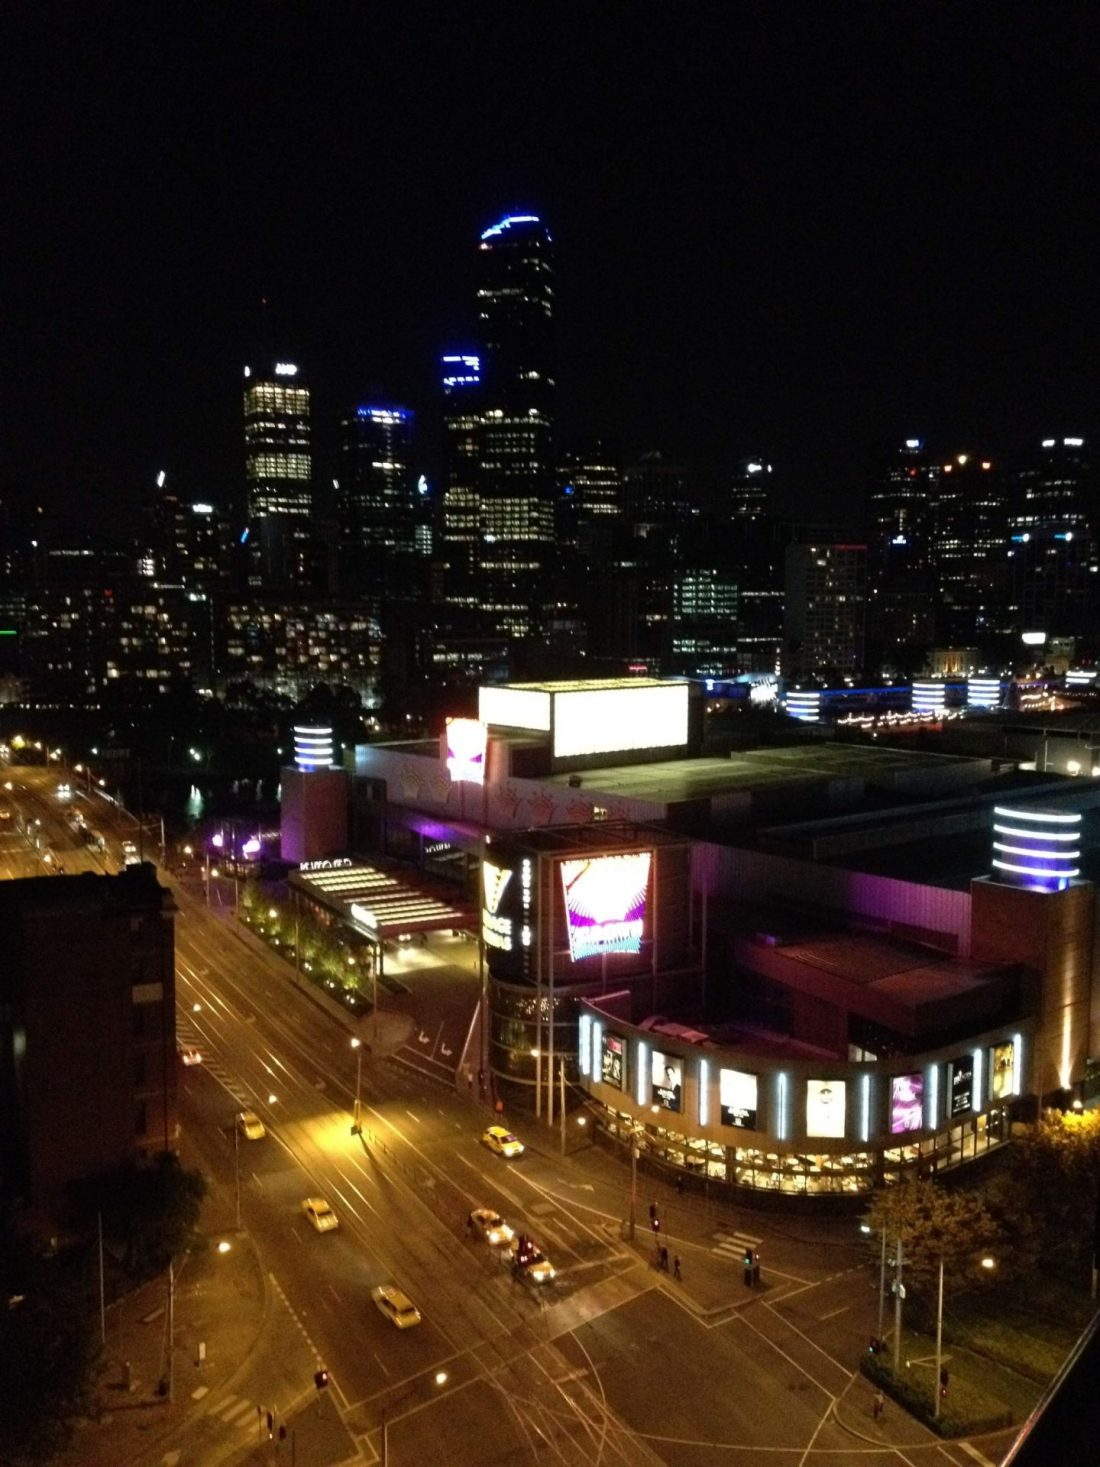 Views of Melbourne at night